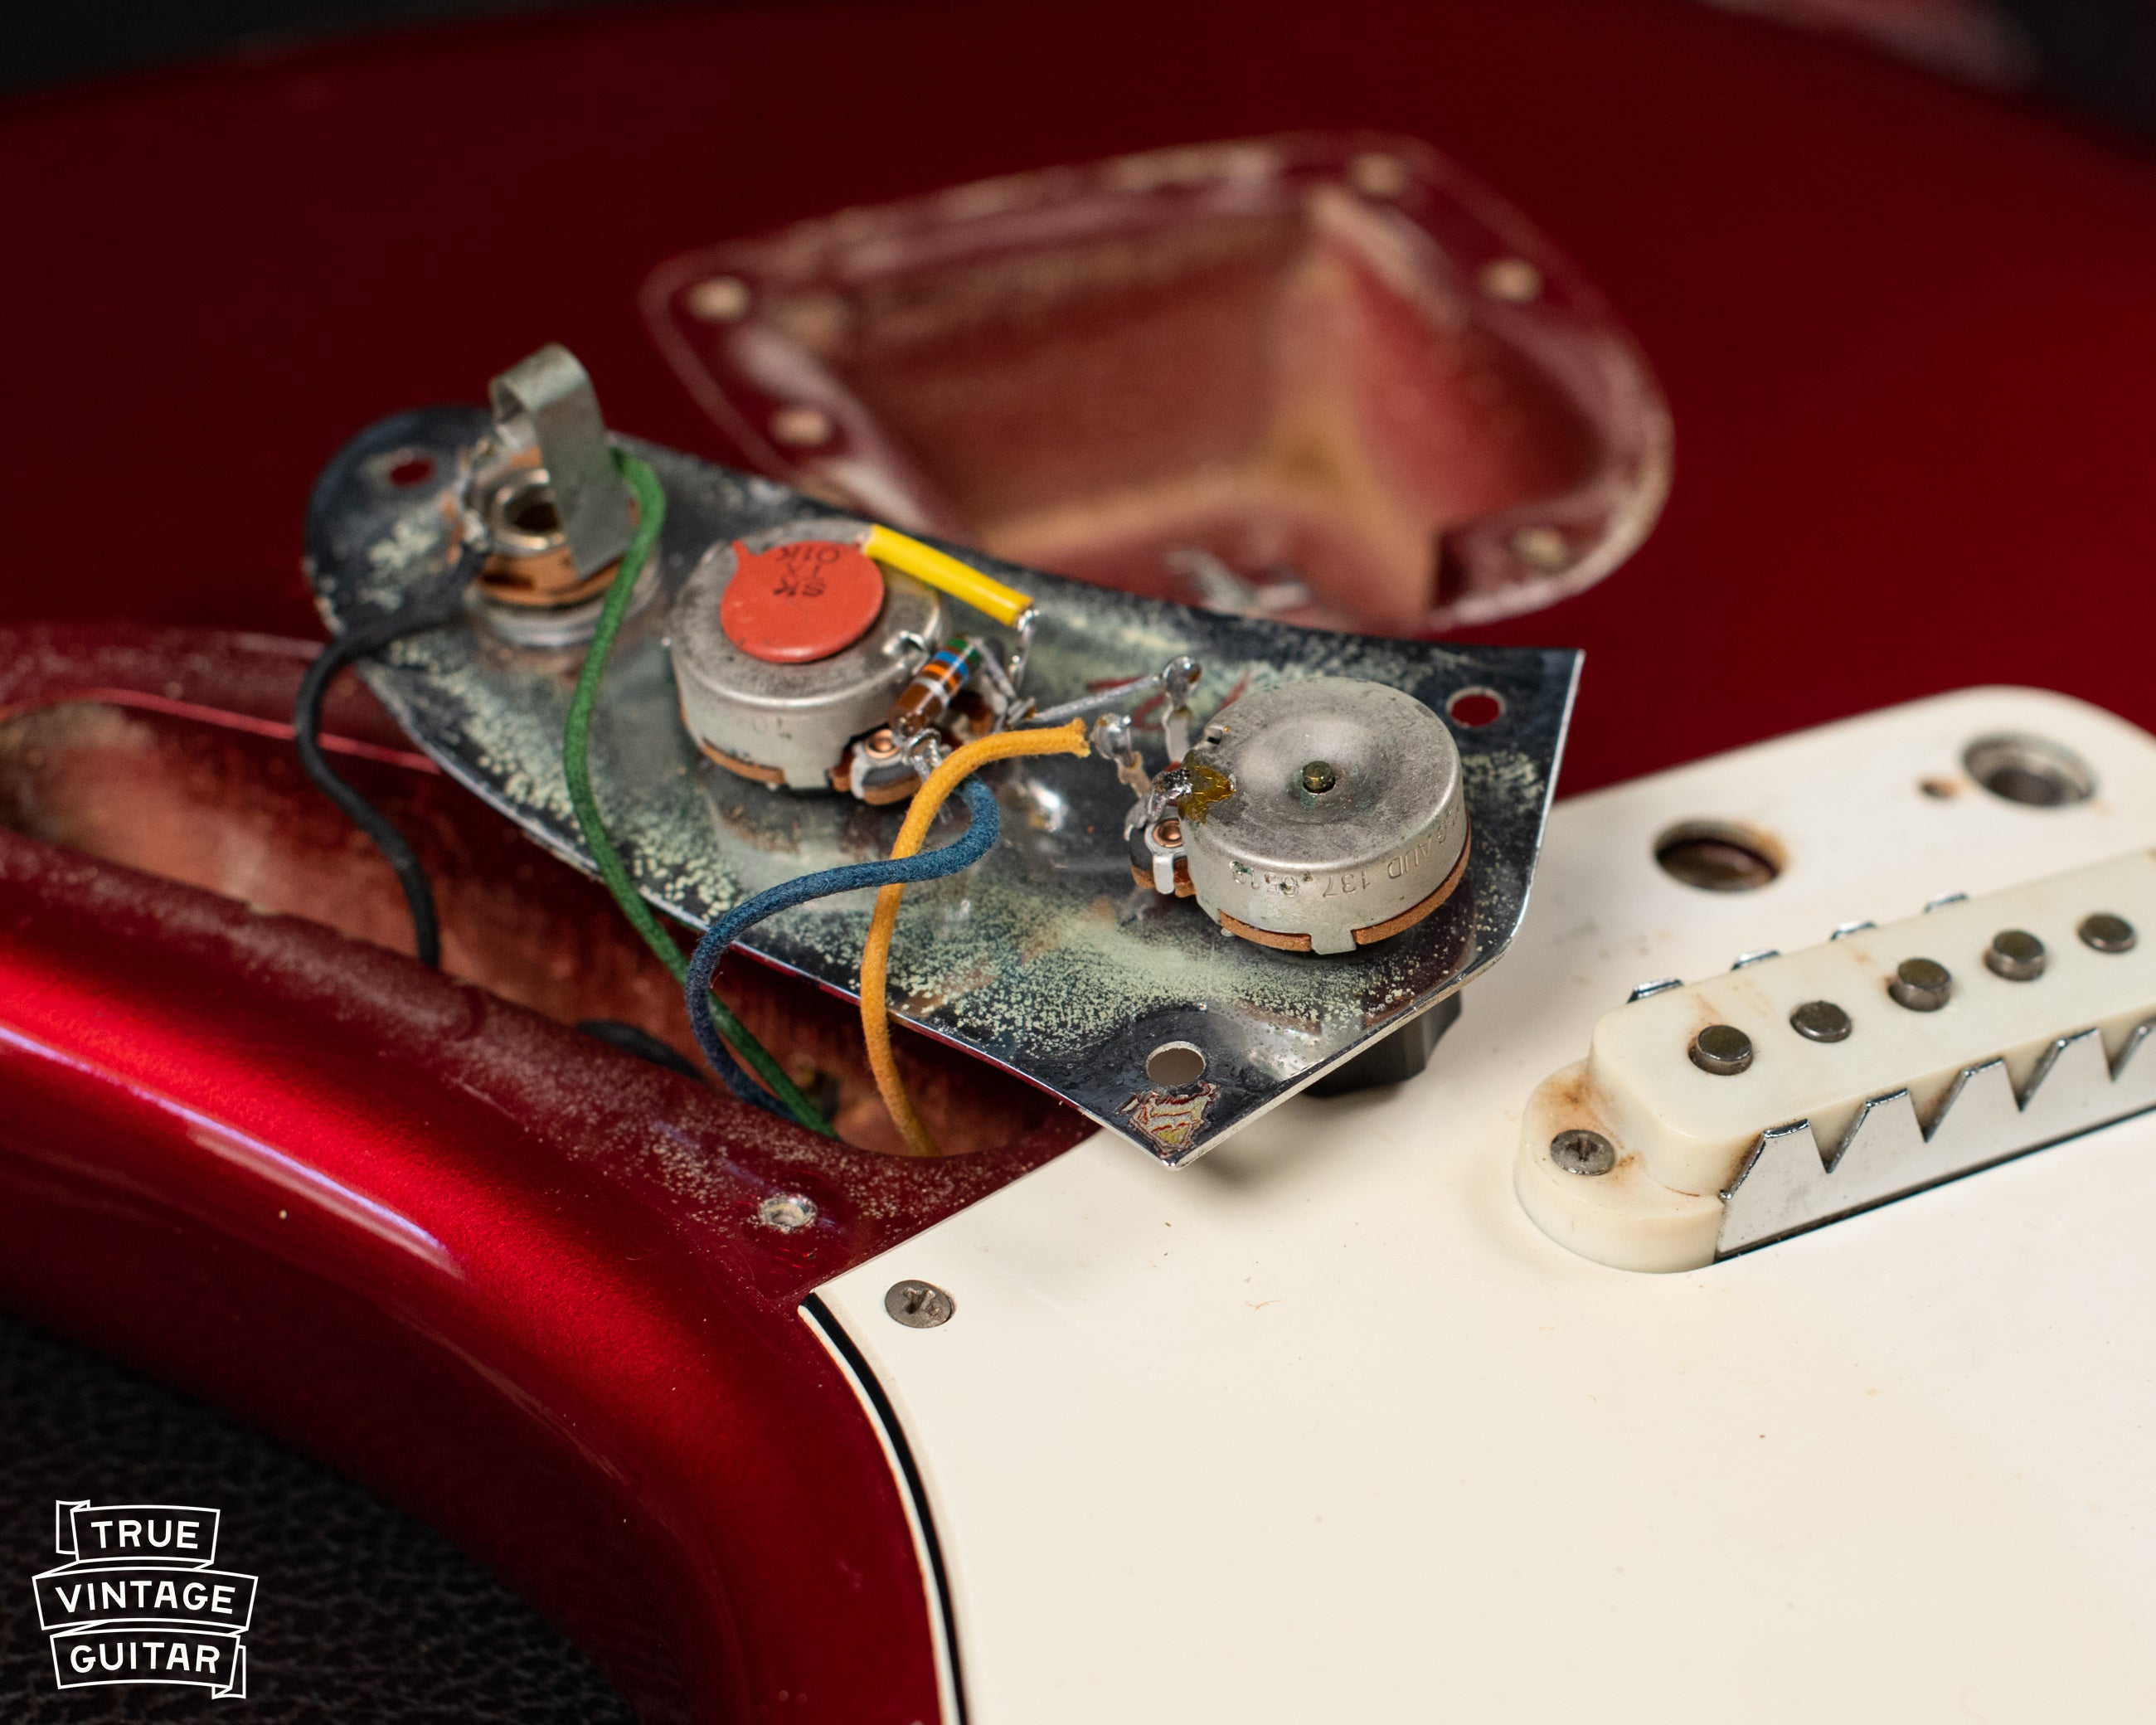 Fender Guitar potentiometer date code